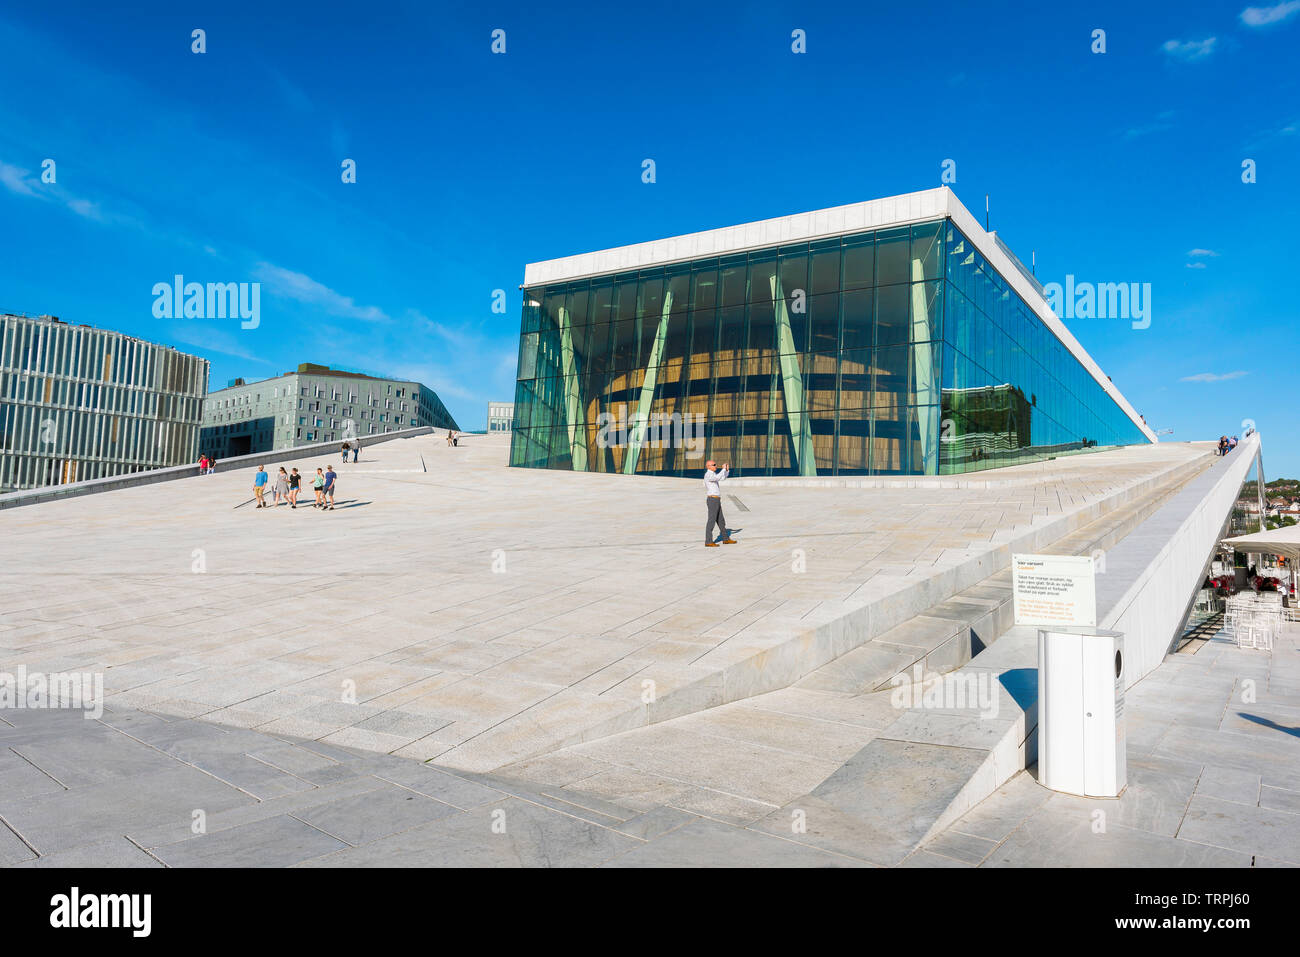 Oslo Opera House, view in summer of a tourist taking a photo while standing on the access ramp leading to the roof of the Oslo Opera House, Norway. Stock Photo